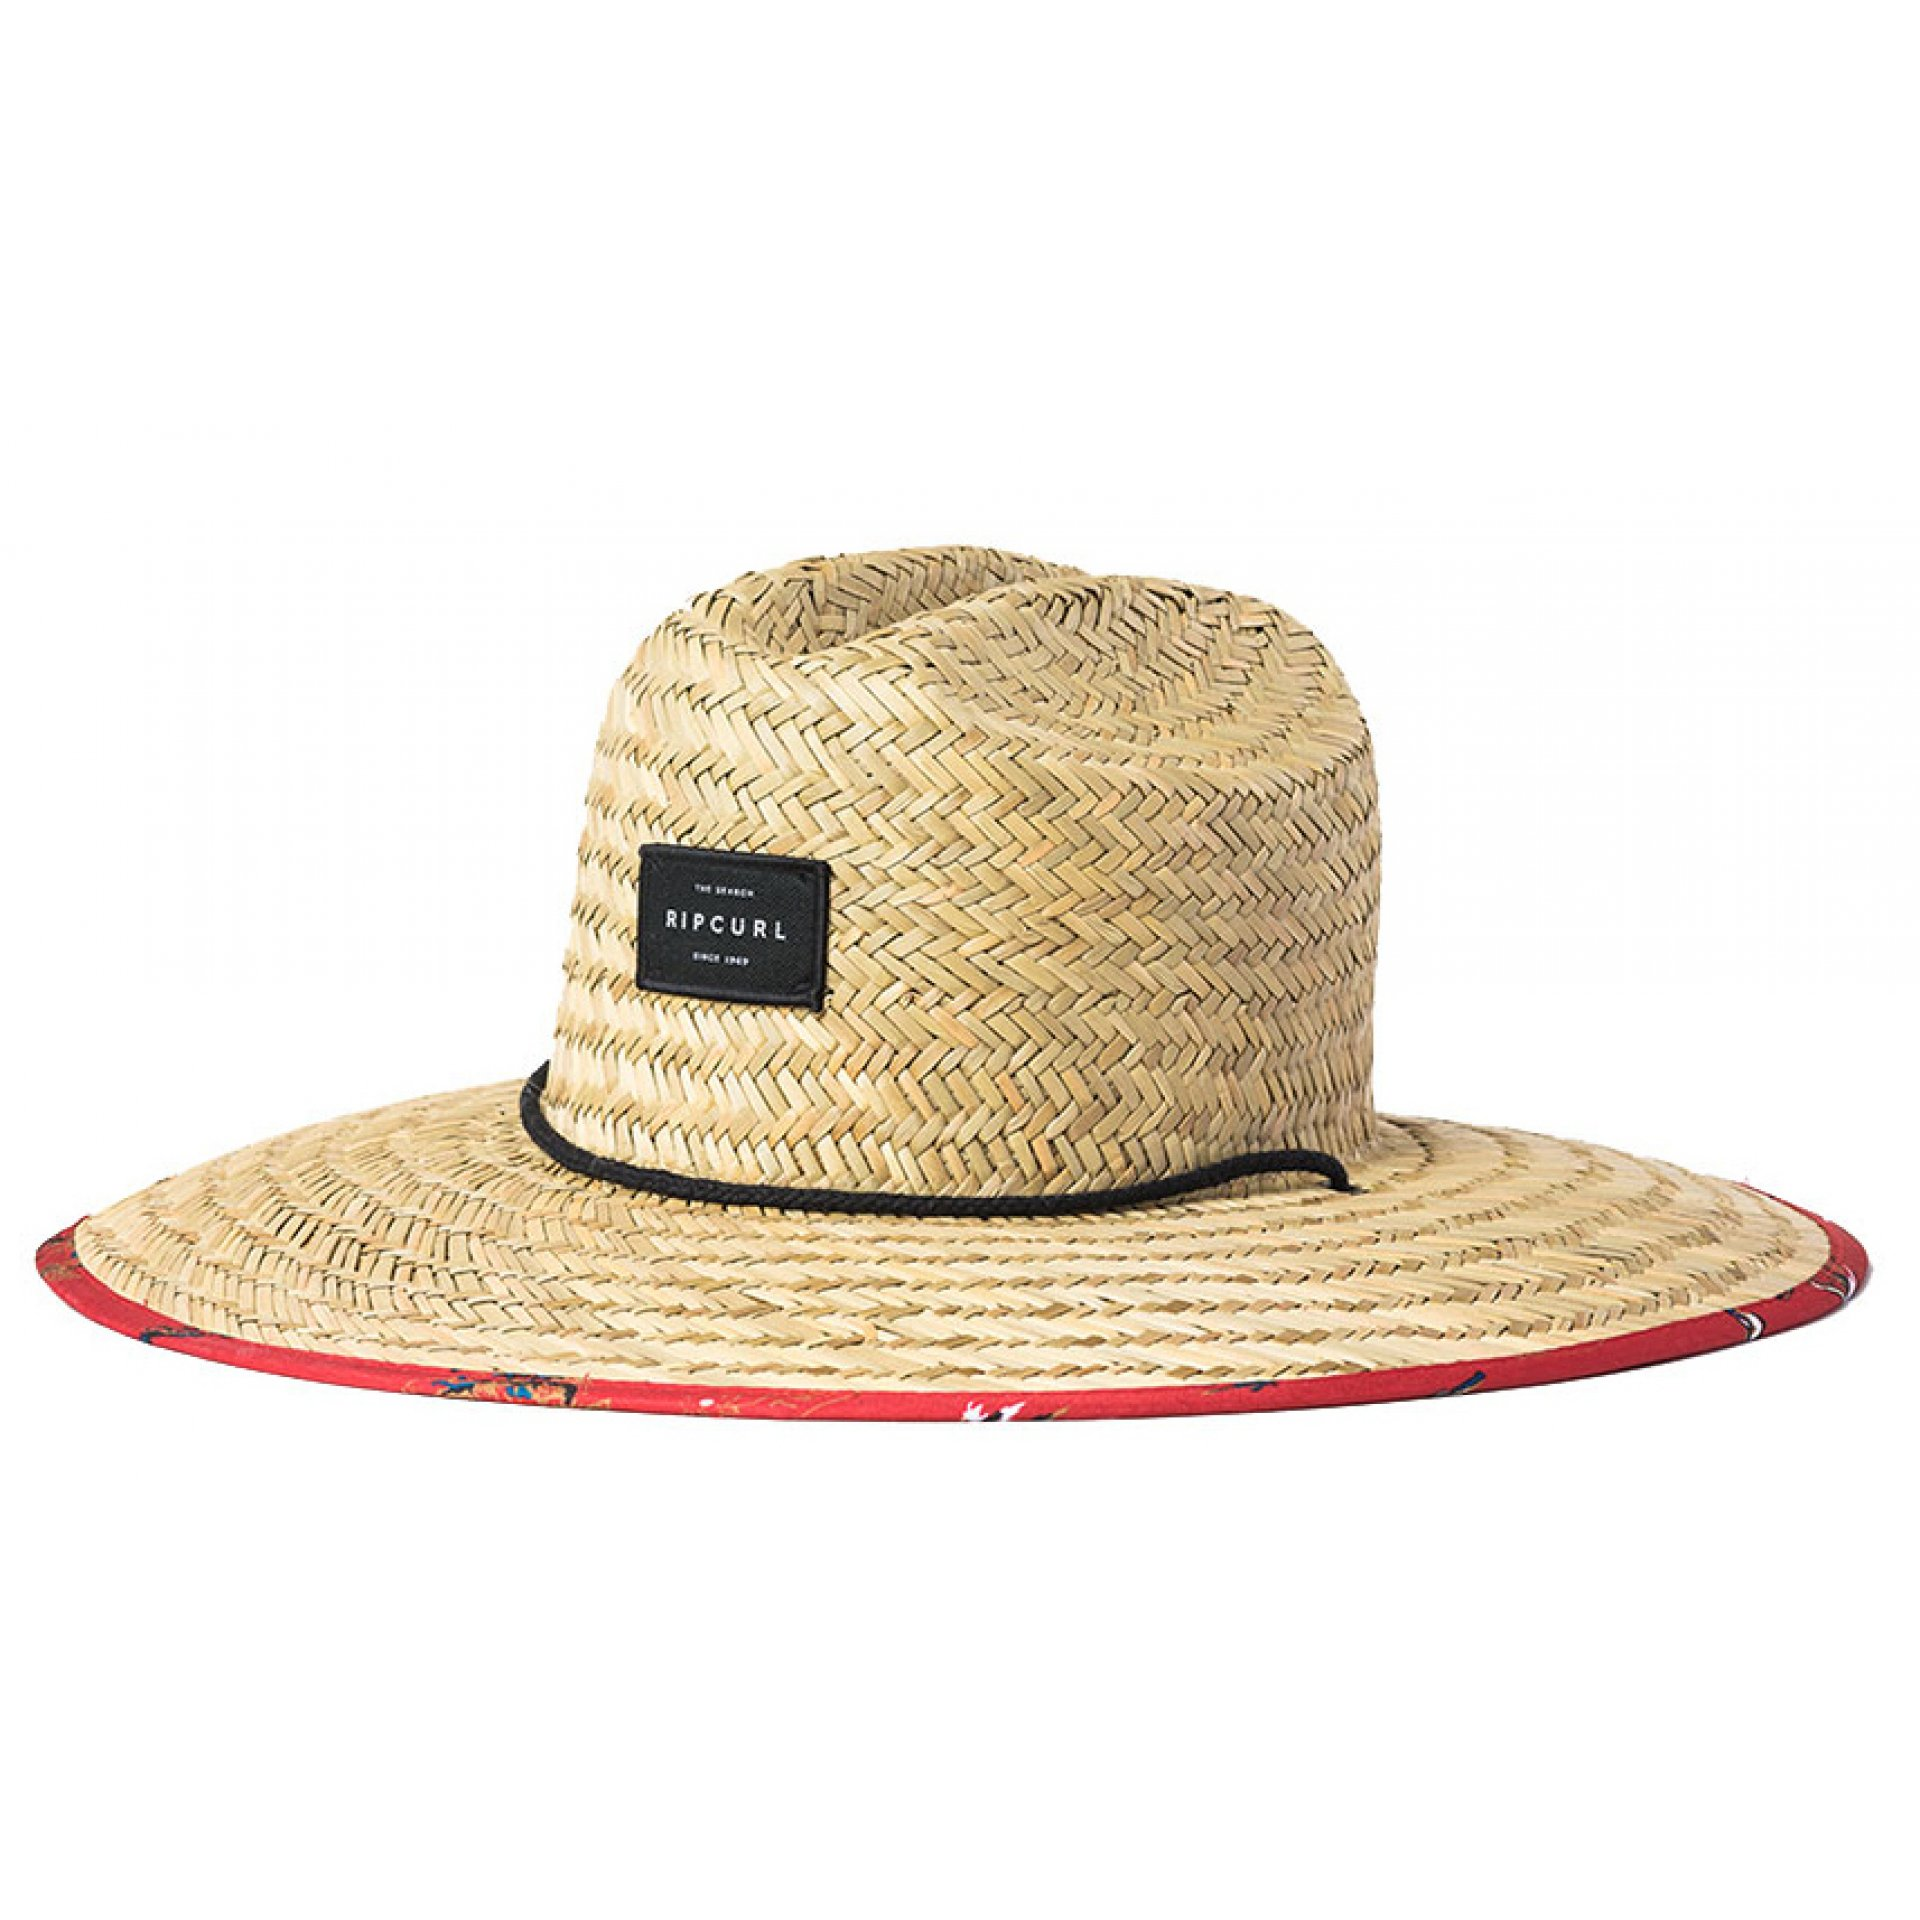 KAPELUSZ RIP CURL SUNNY DAYS HAT CHAAD4 40 RED